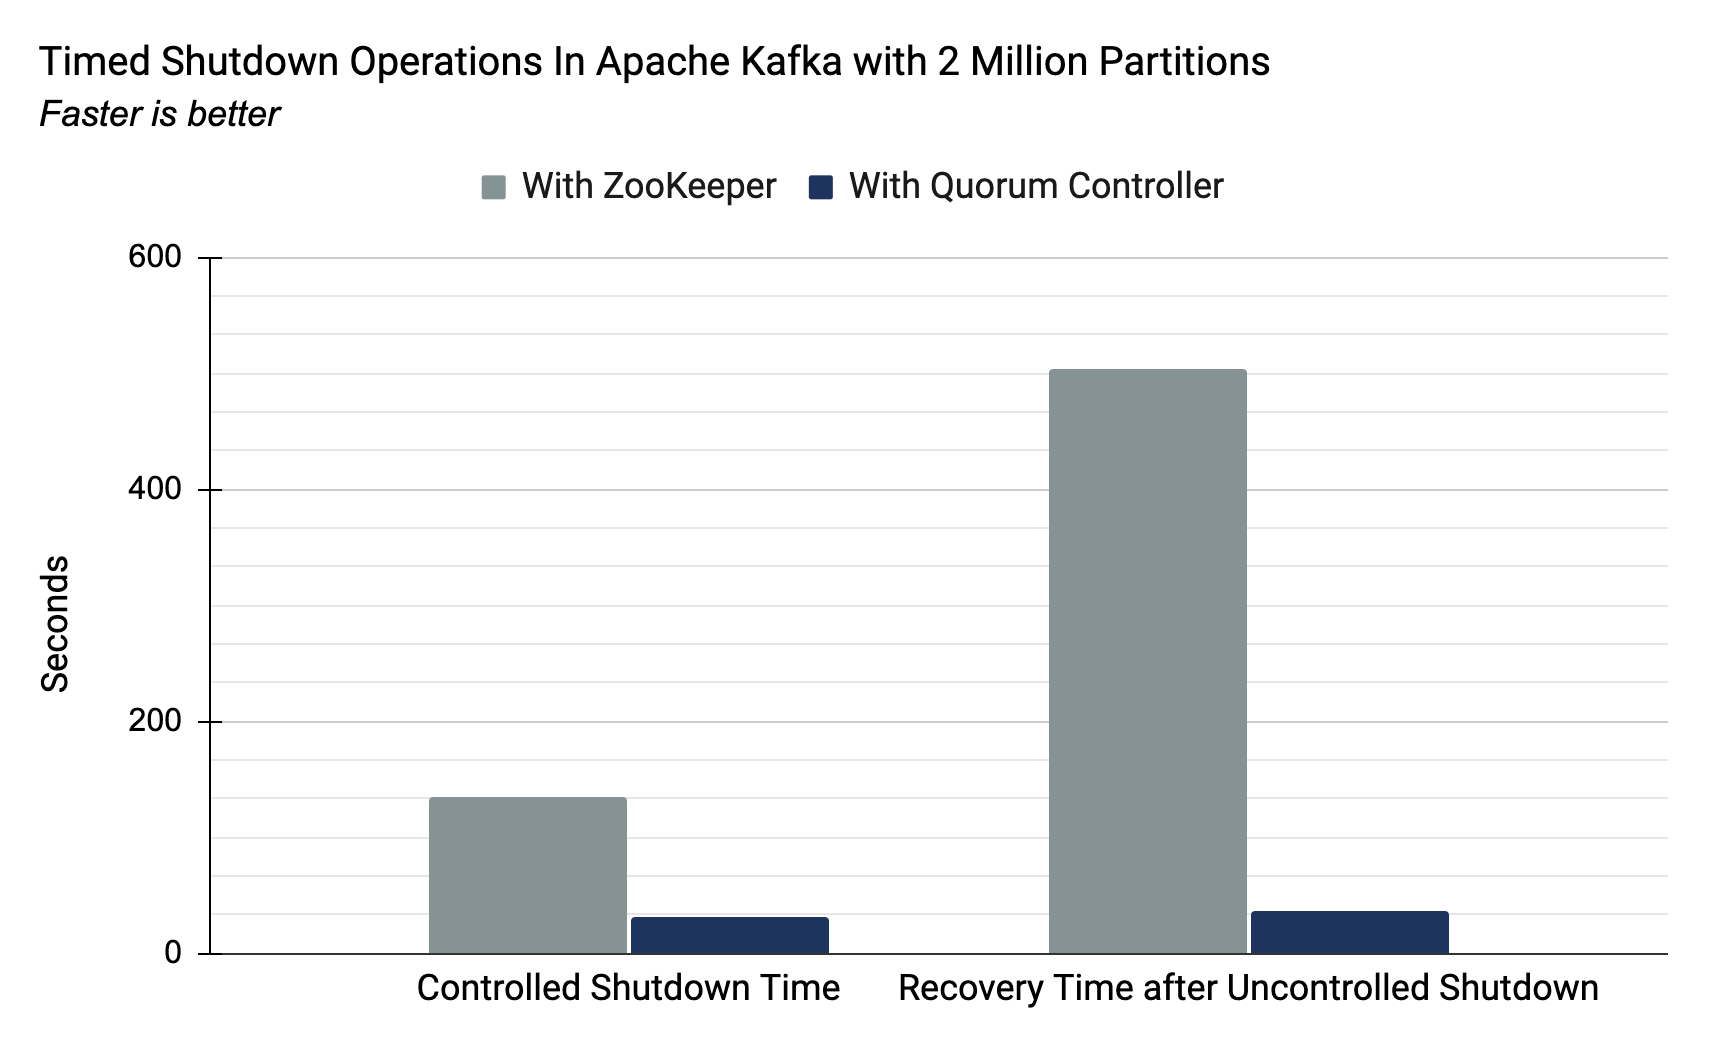 Timed shutdown operations in Apache Kafka with 2 million partitions